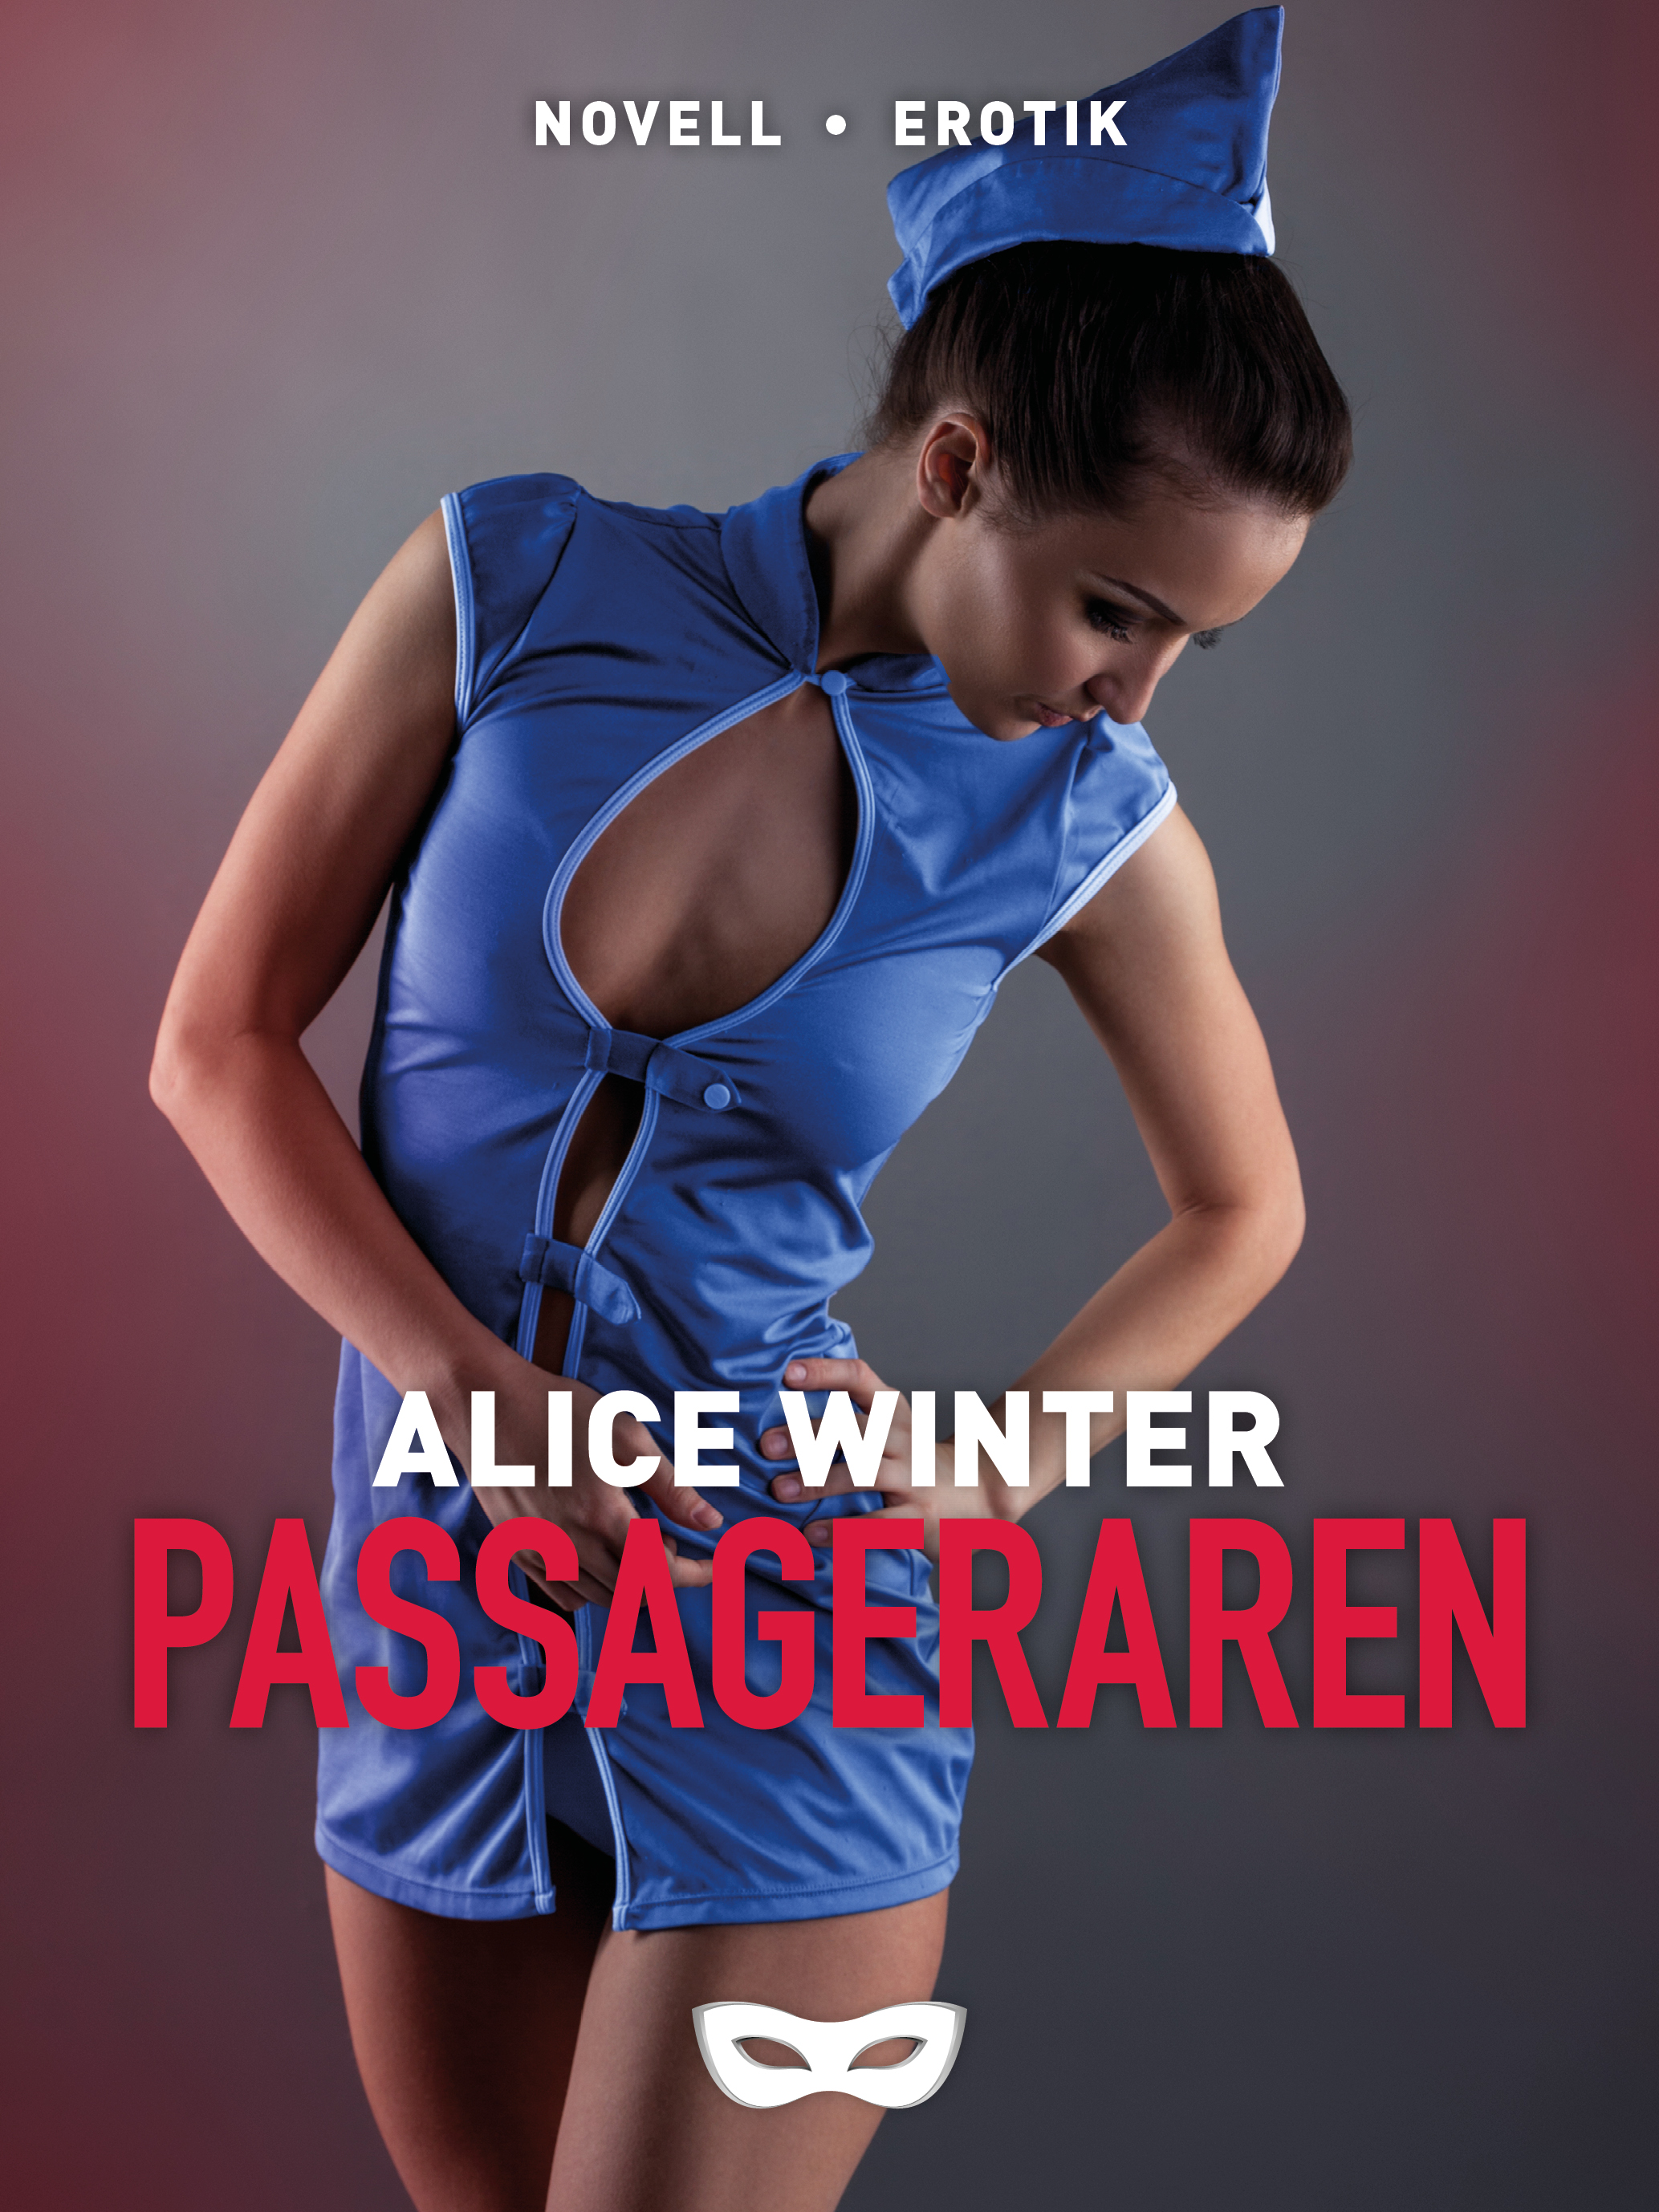 GER-n_Passageraren_Alice Winter.jpg